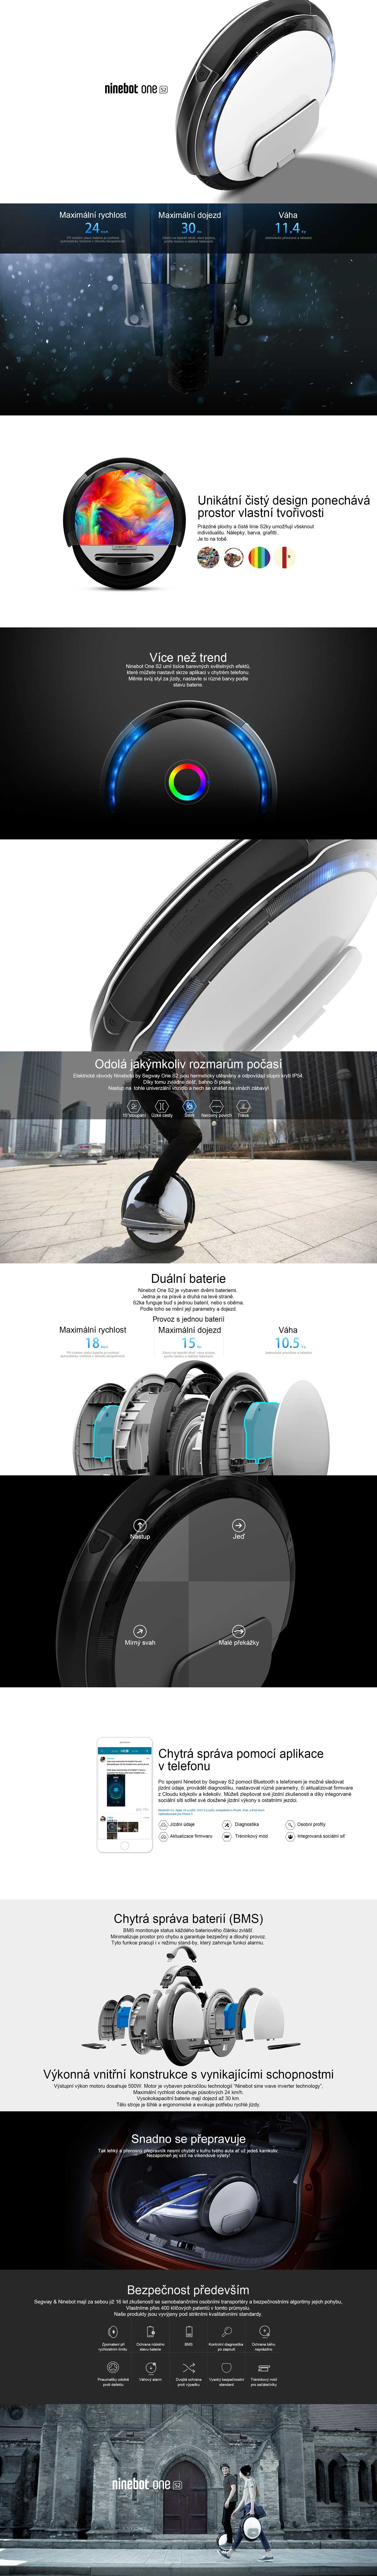 Ninebot by Segway-One S2 webpage30